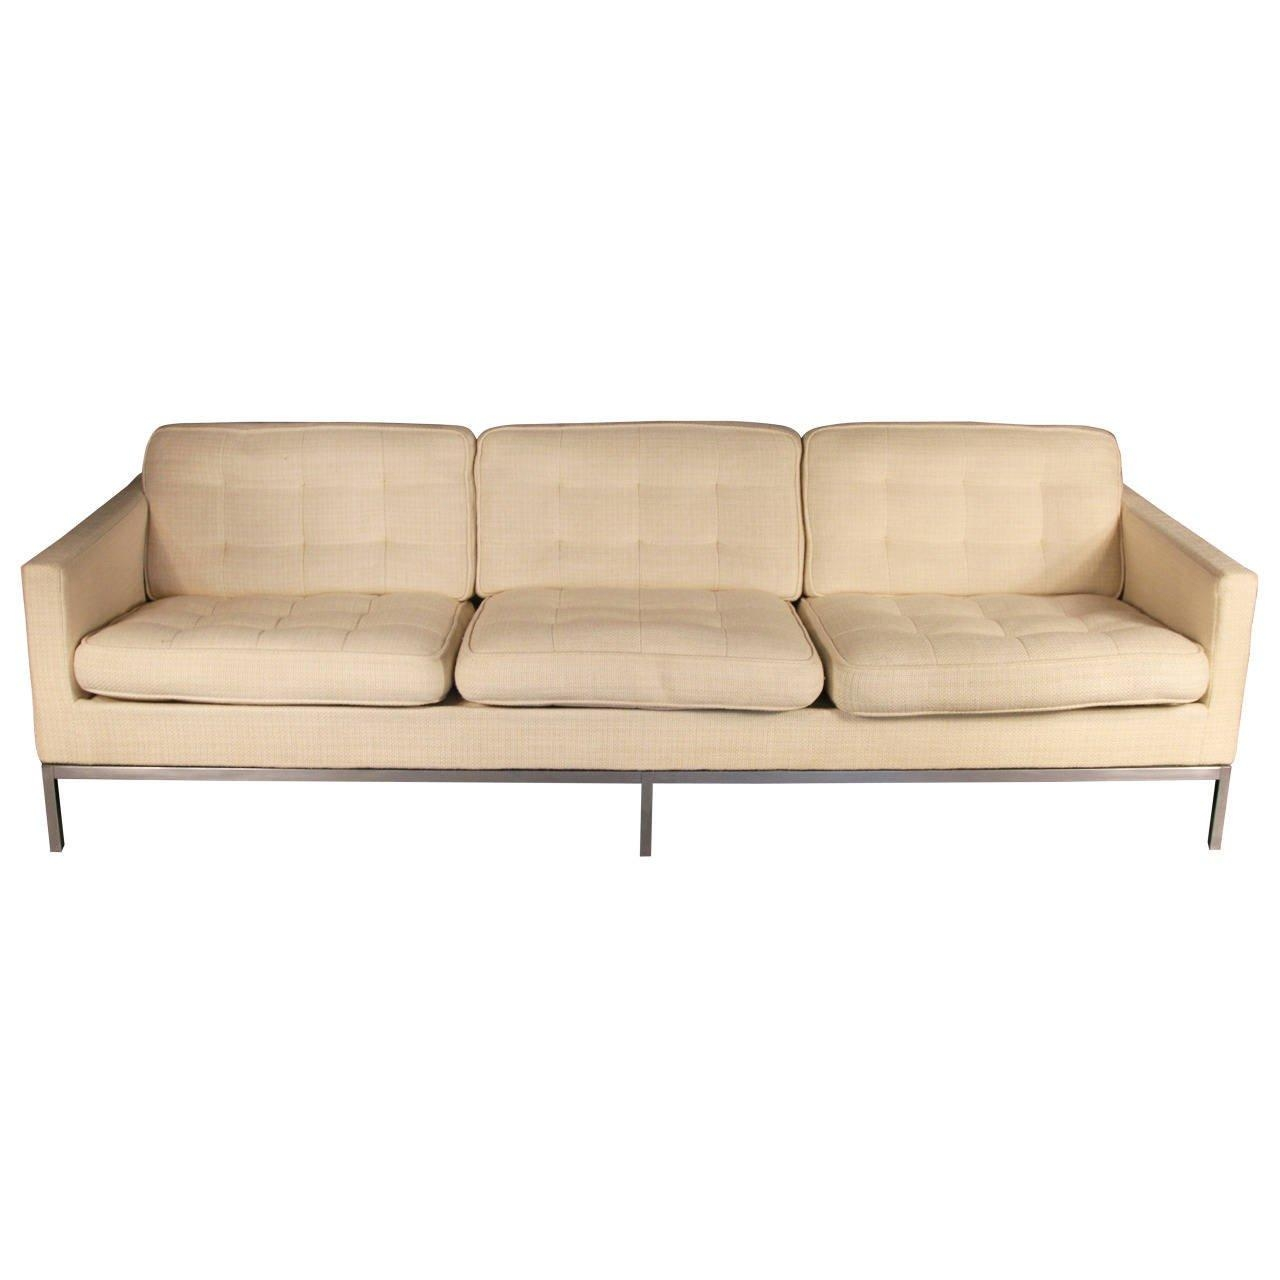 Three Seater Sofaflorence Knoll At 1Stdibs Within Florence Knoll Wood Legs Sofas (View 13 of 20)